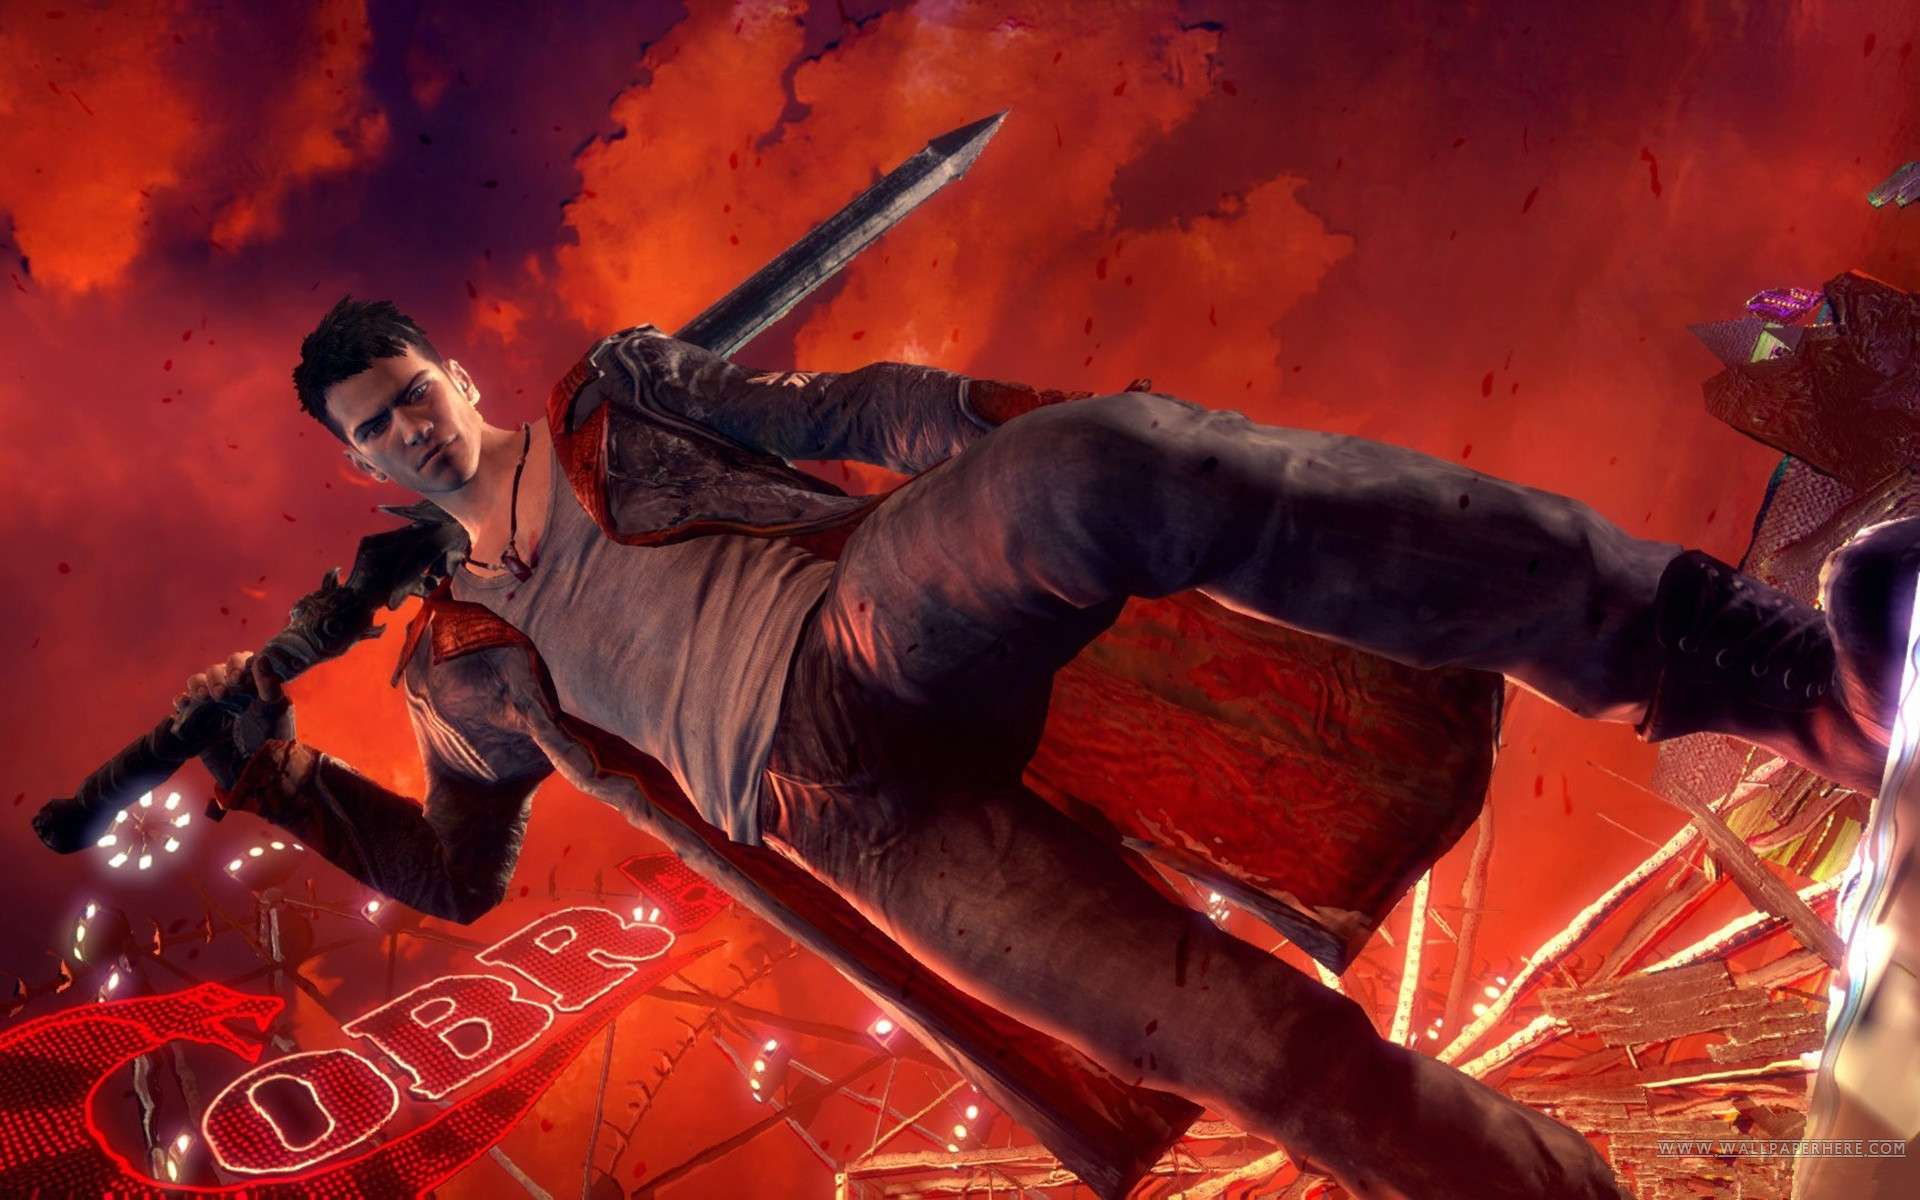 dante dmc 5 enter - photo #44